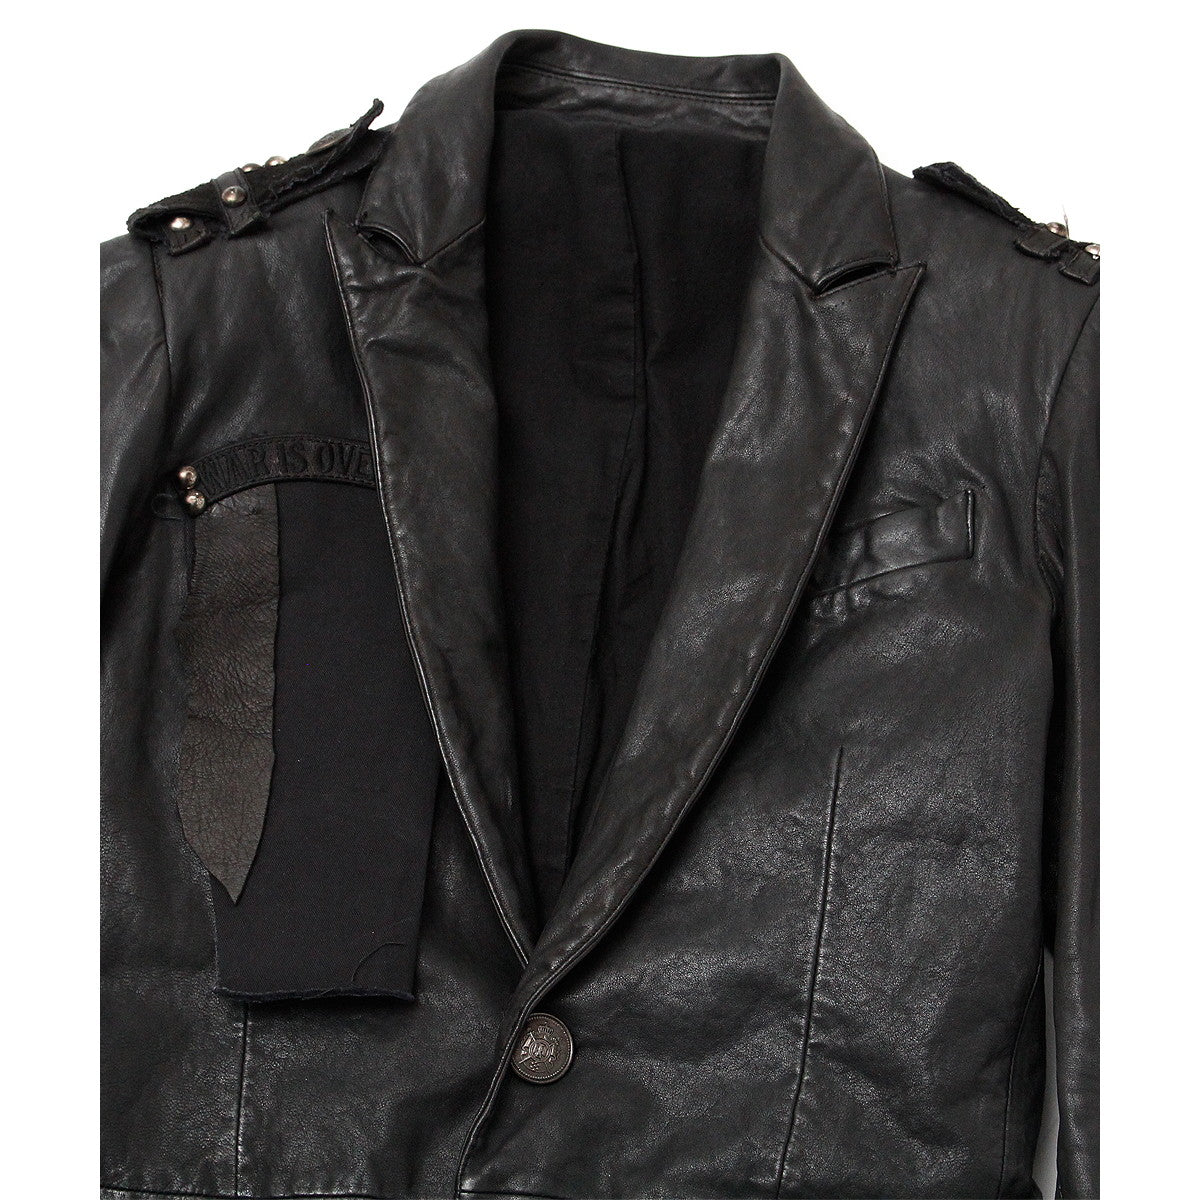 SPECIAL REMAKE LEATHER LONG JACKET / BLACK